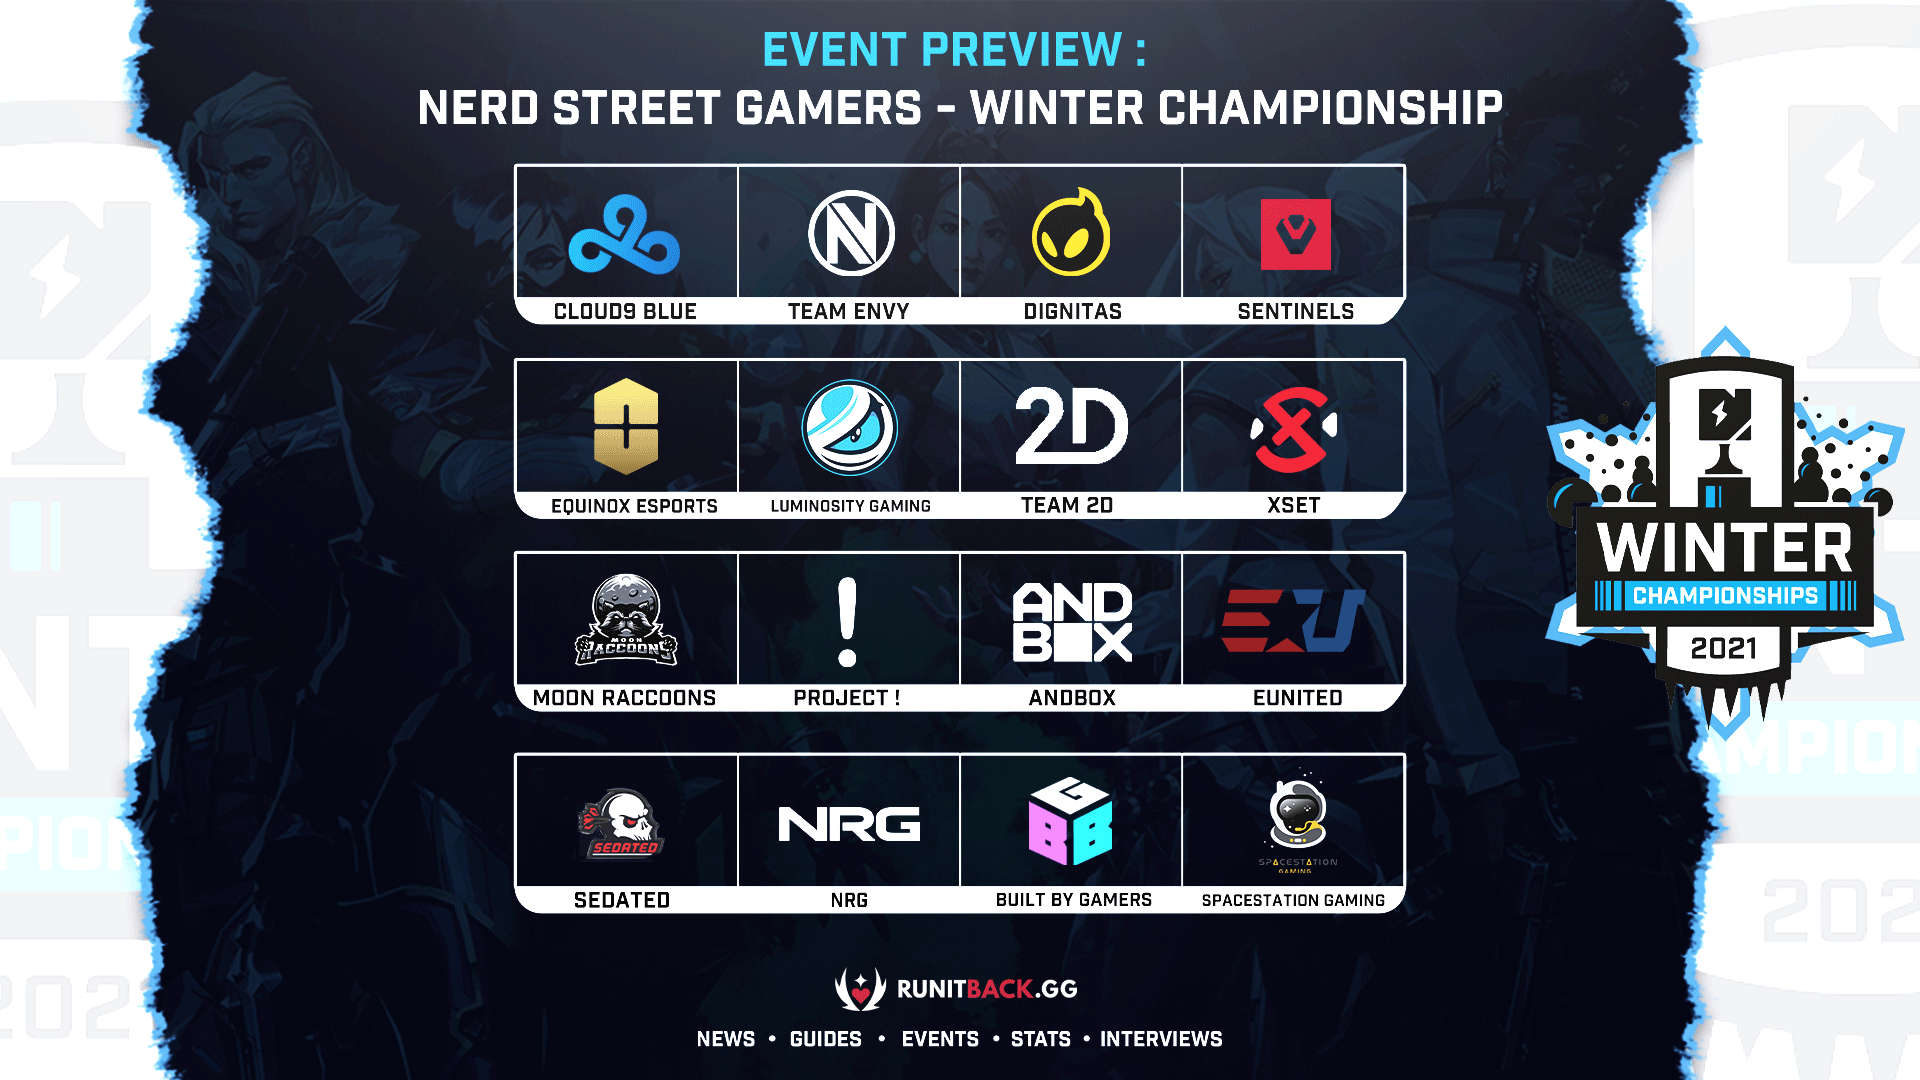 Event Preview: Nerd Street Gamers Winter Championships